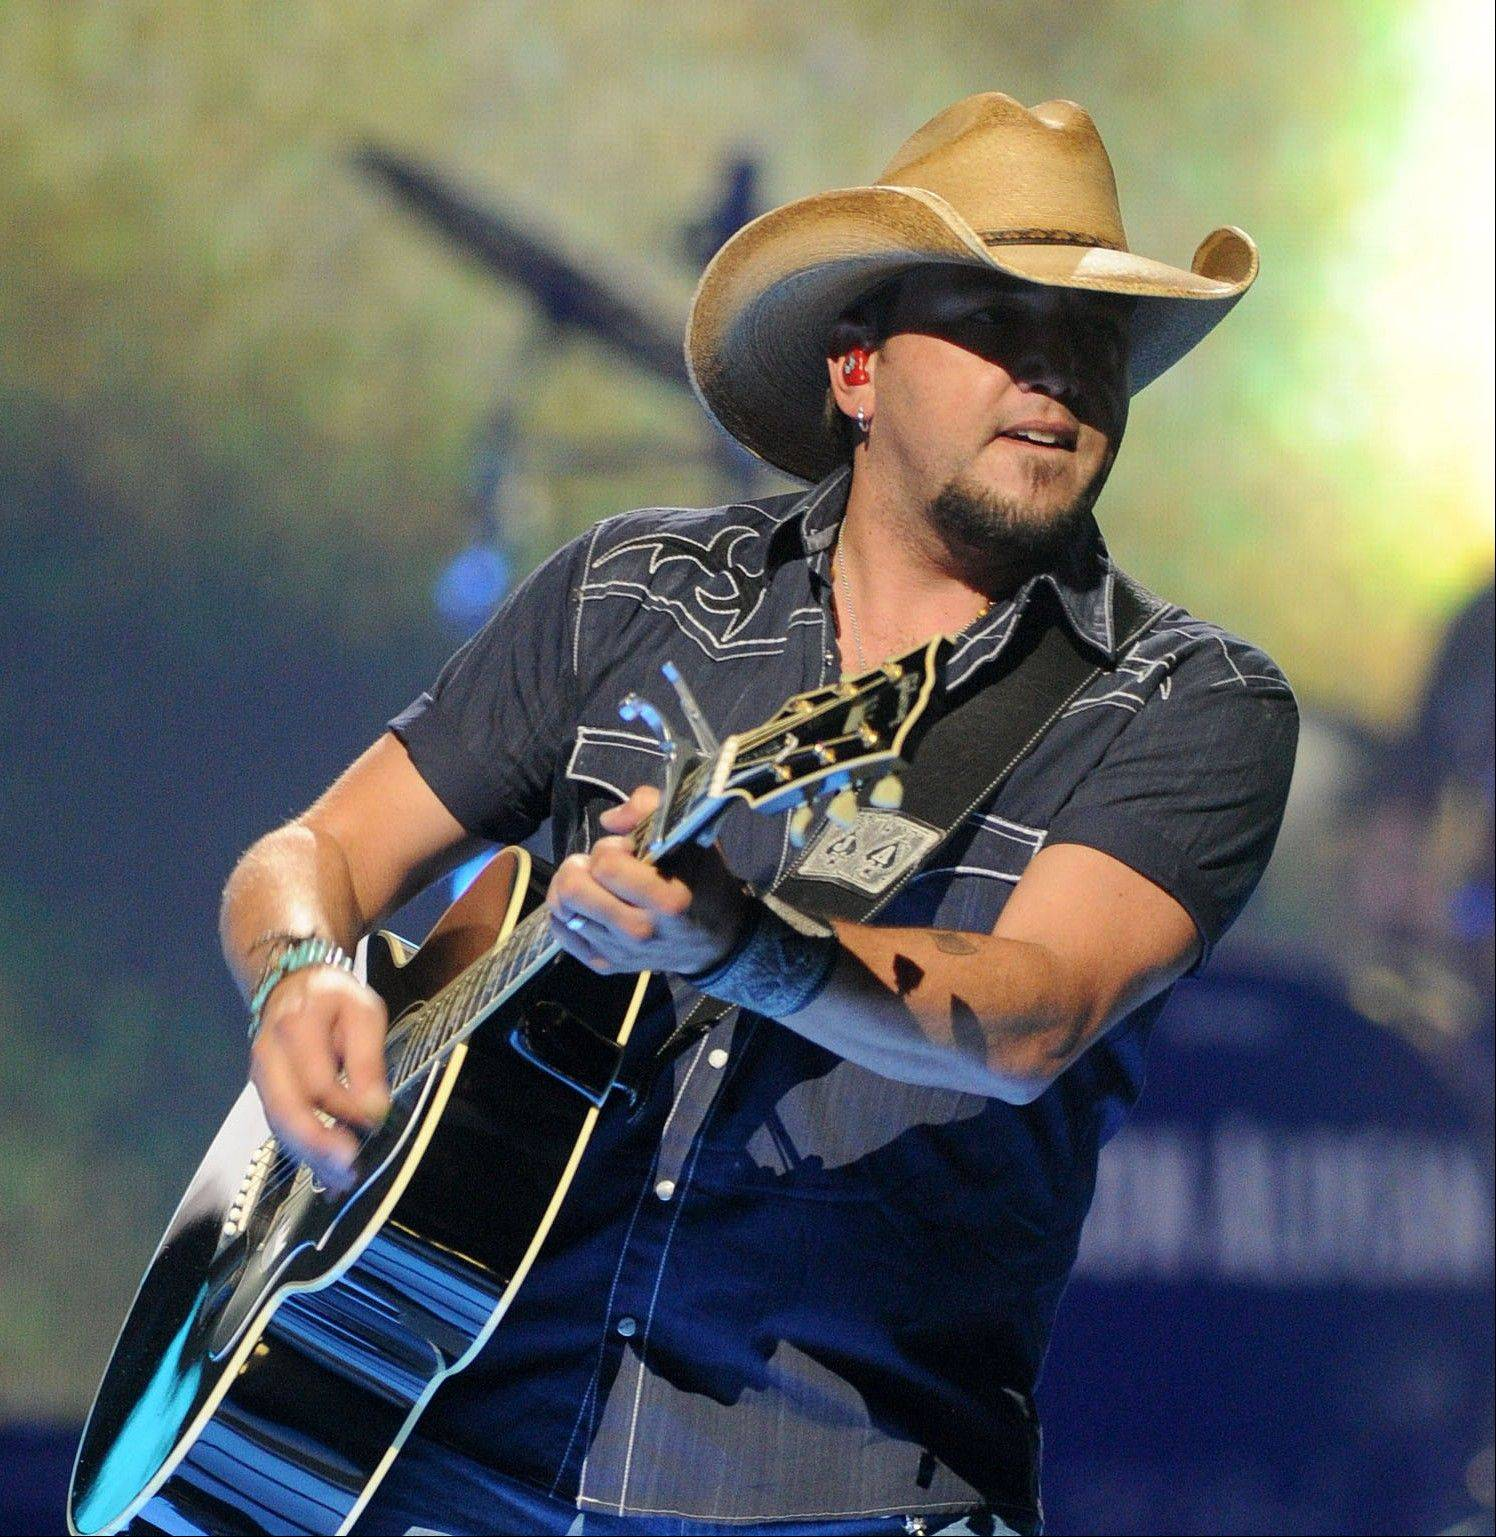 Jason Aldean is among the first round of performers announced for the American Country Awards on Dec. 10.